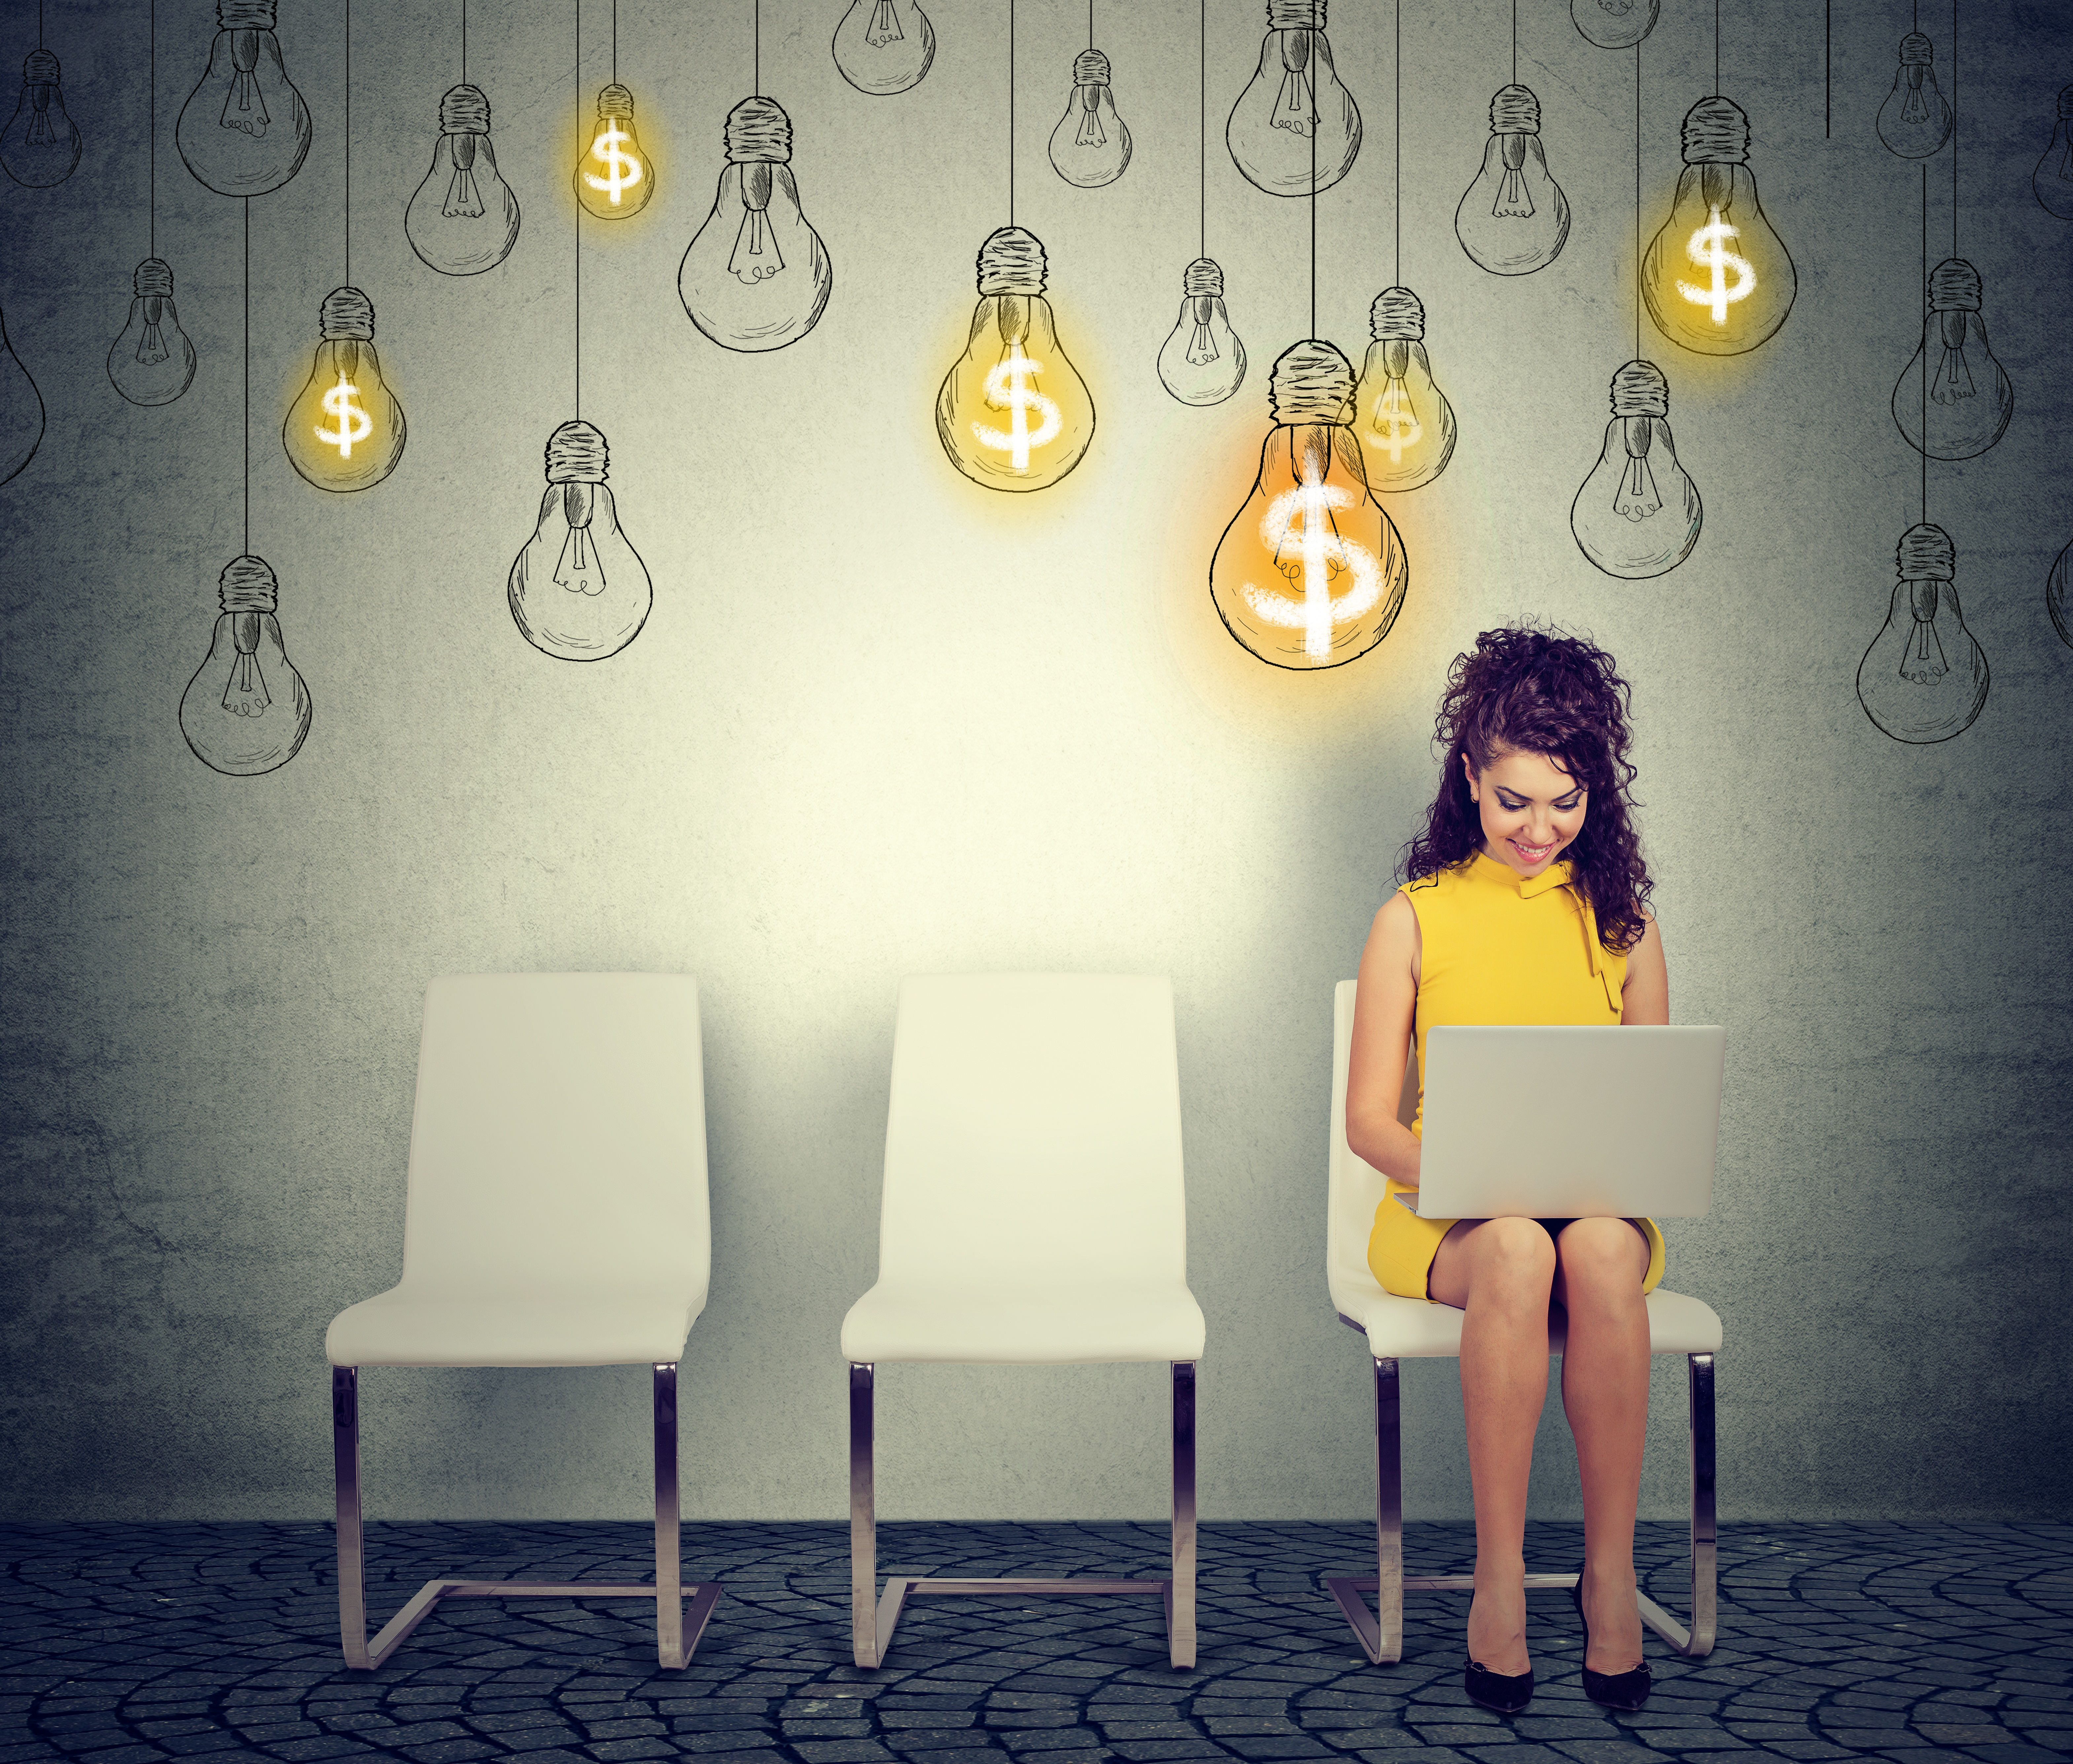 Choose Winning Moves for revenue growth